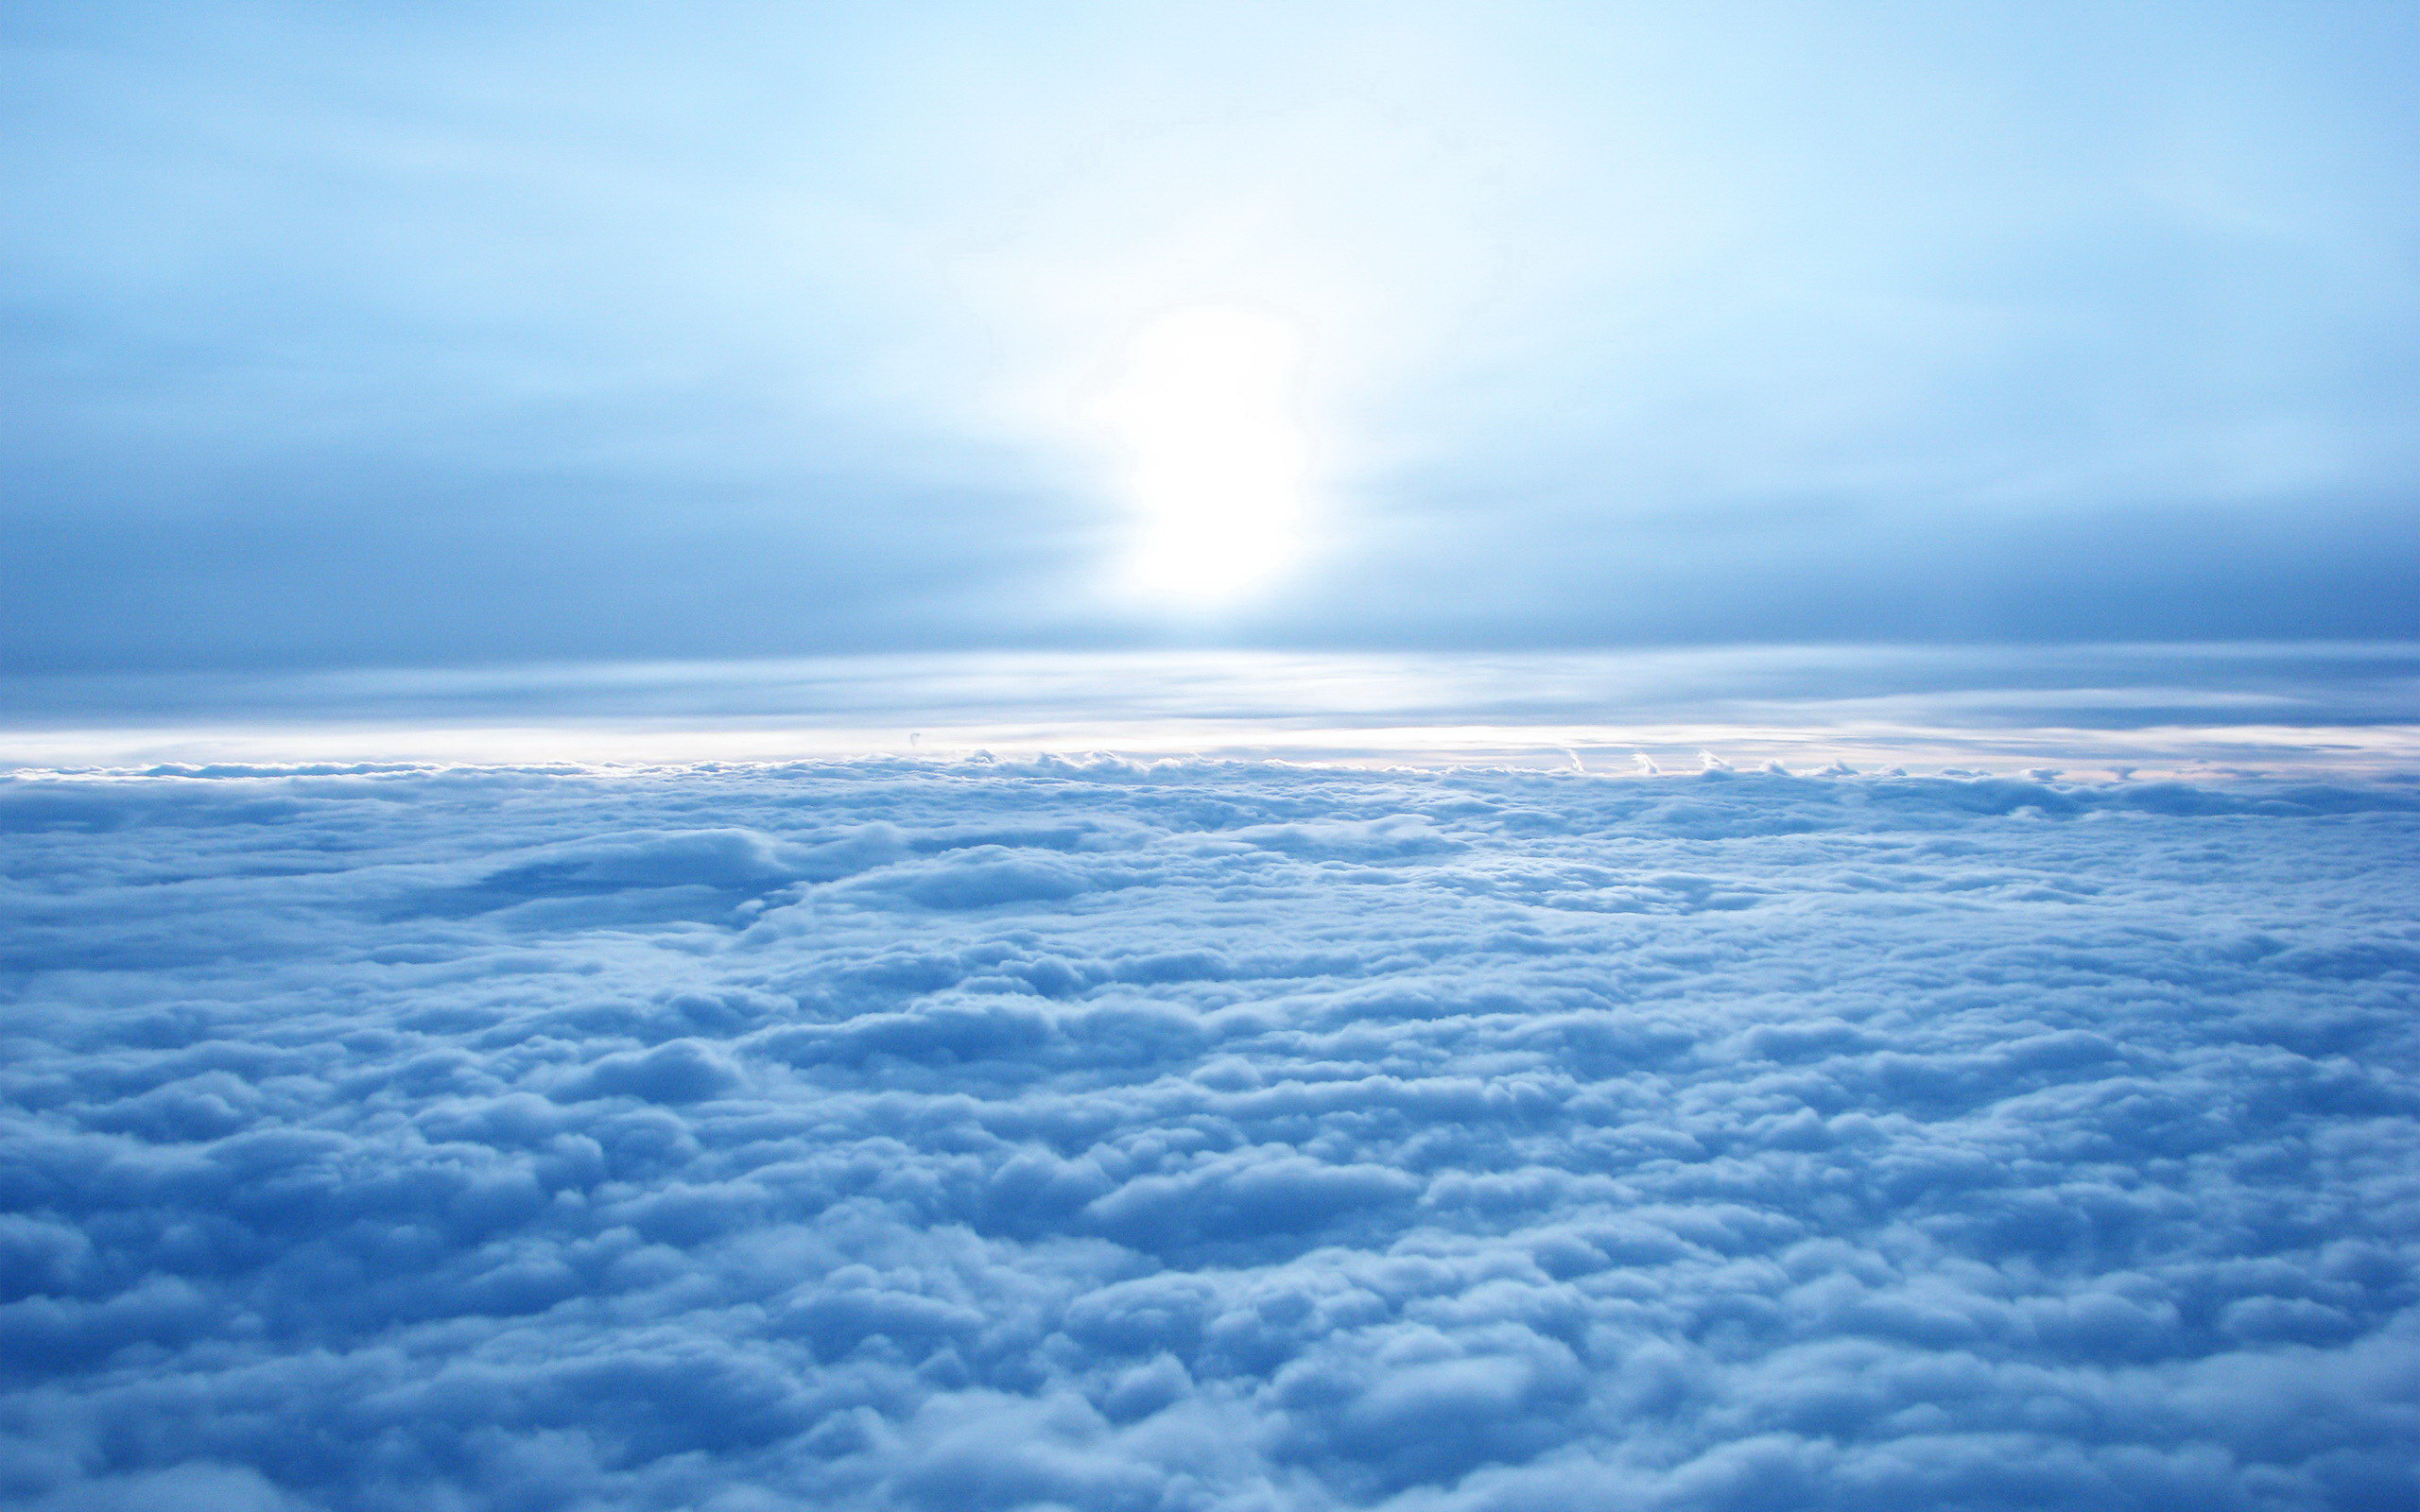 Above the clouds wallpaper Wallpaper Wide HD 2560x1600